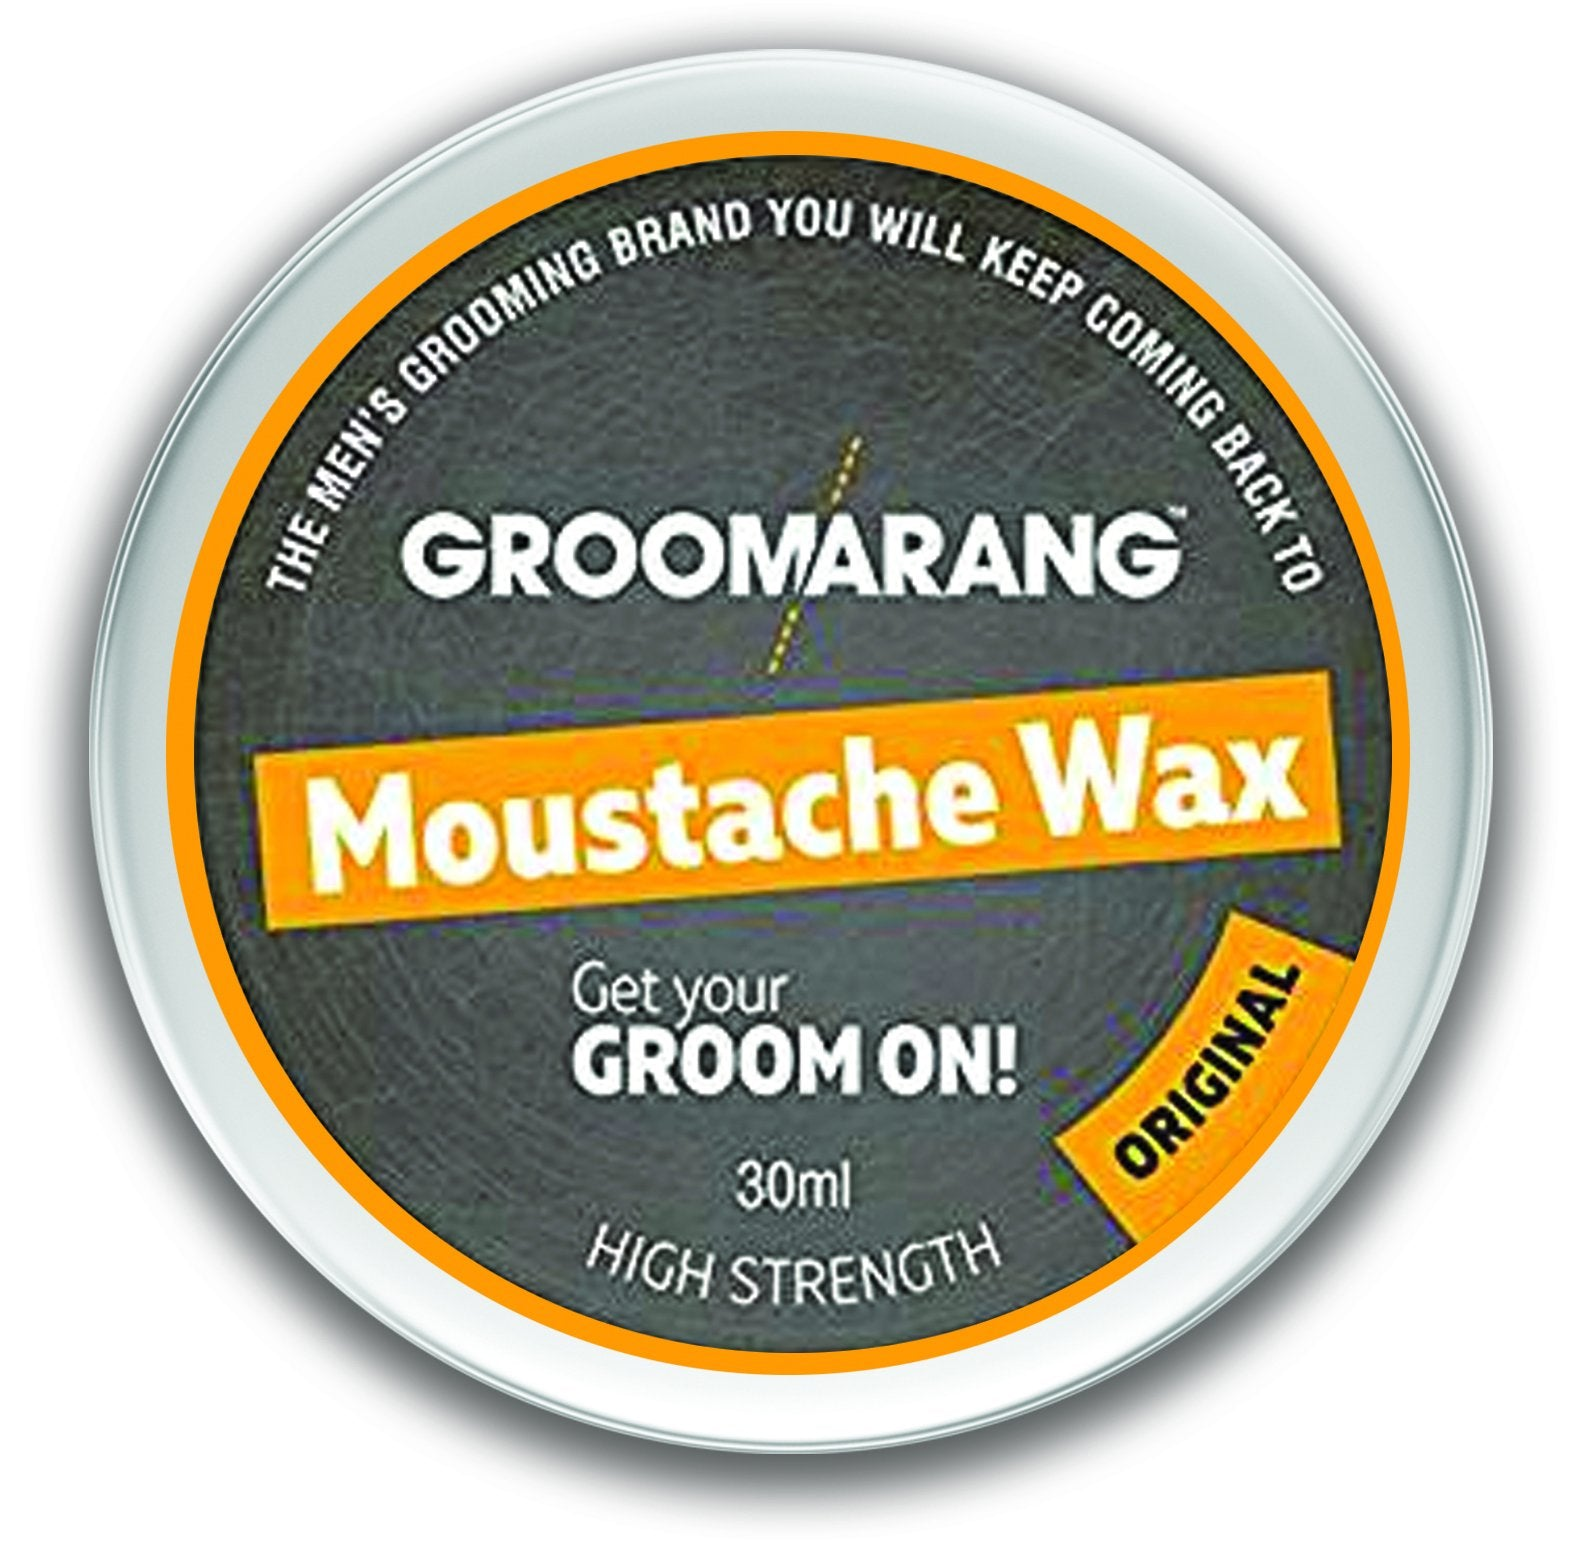 Groomarang Original Moustache Wax, Hair Styling Products - Image 0